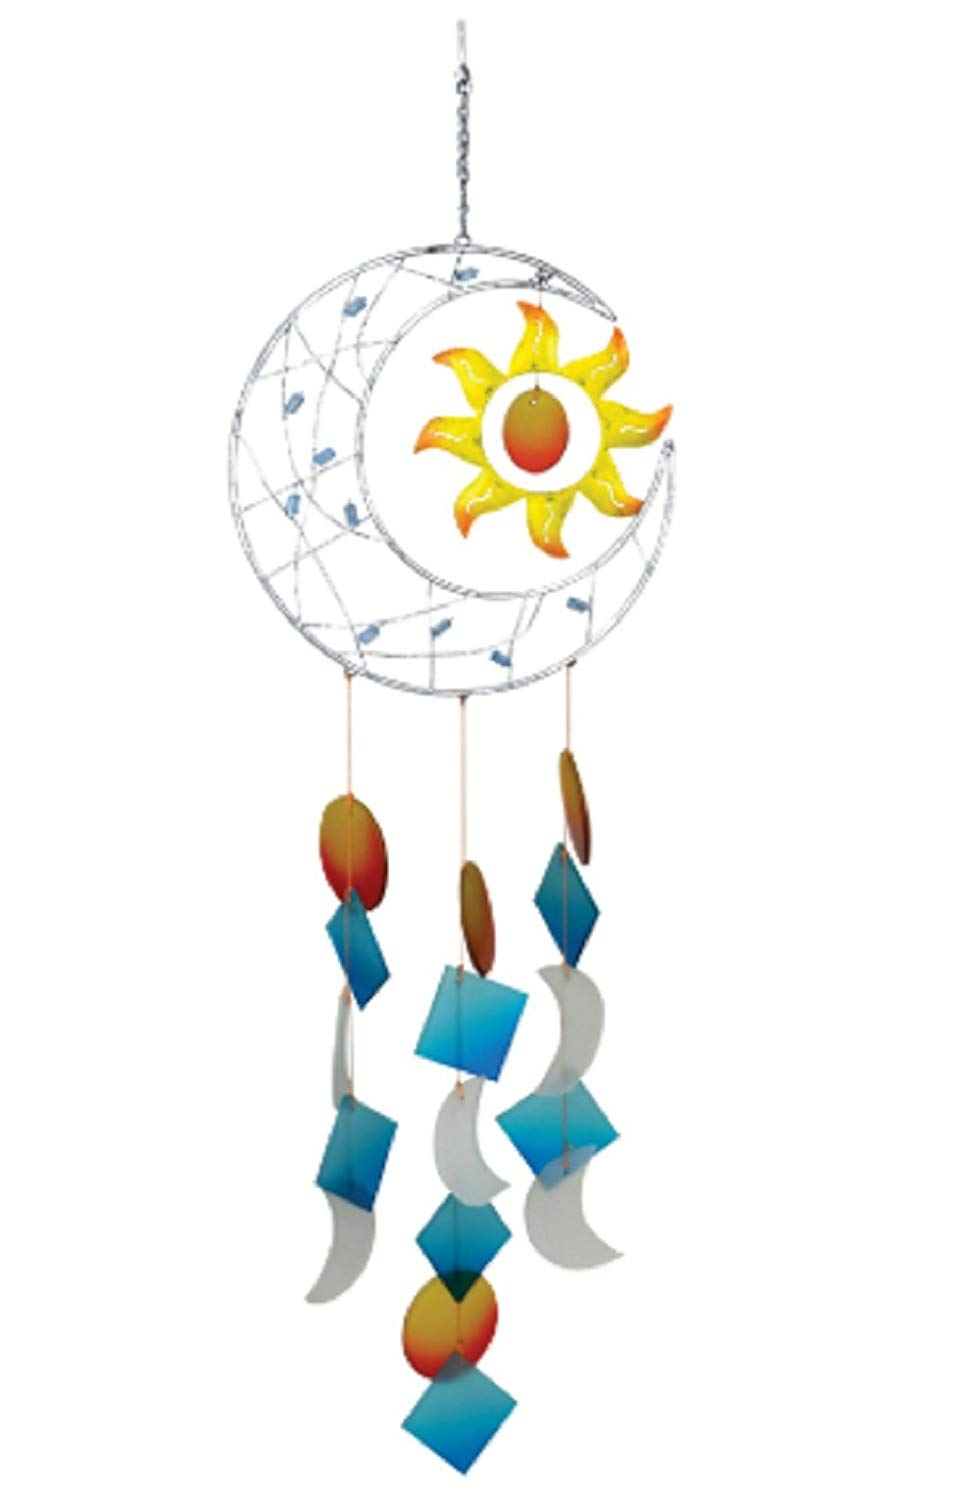 MyEasyShopping Celestial Moon Chime Wind Stars Sun Metal Blue Star Long Garden Bells Outdoor Acrylic Decor Handmade Porcelain 3 Strings Pieces Home Decoration